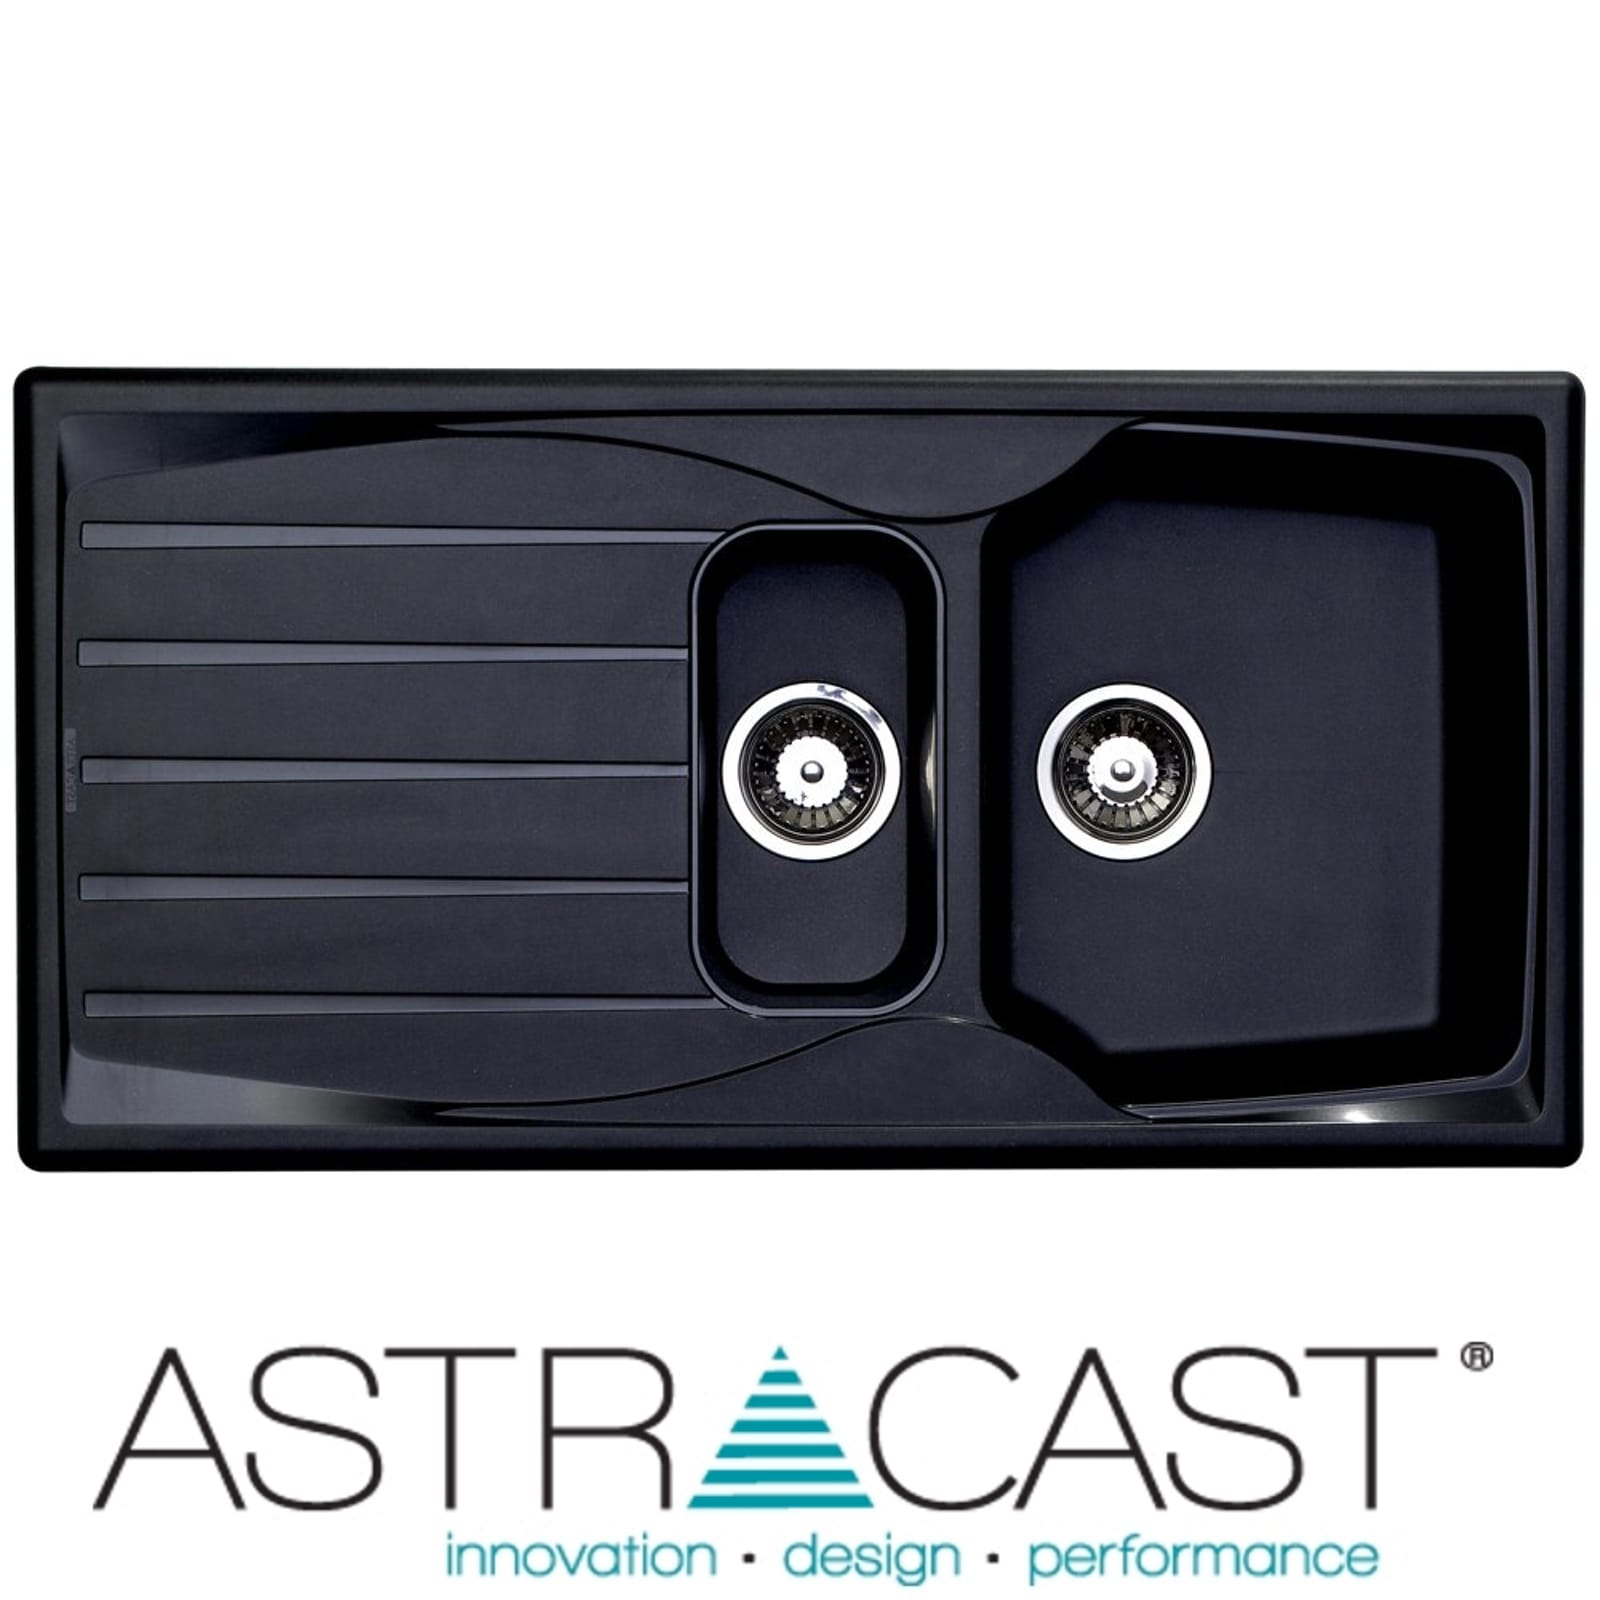 Details about astracast sierra 1 5 bowl teflite reversible black kitchen sink and waste kit